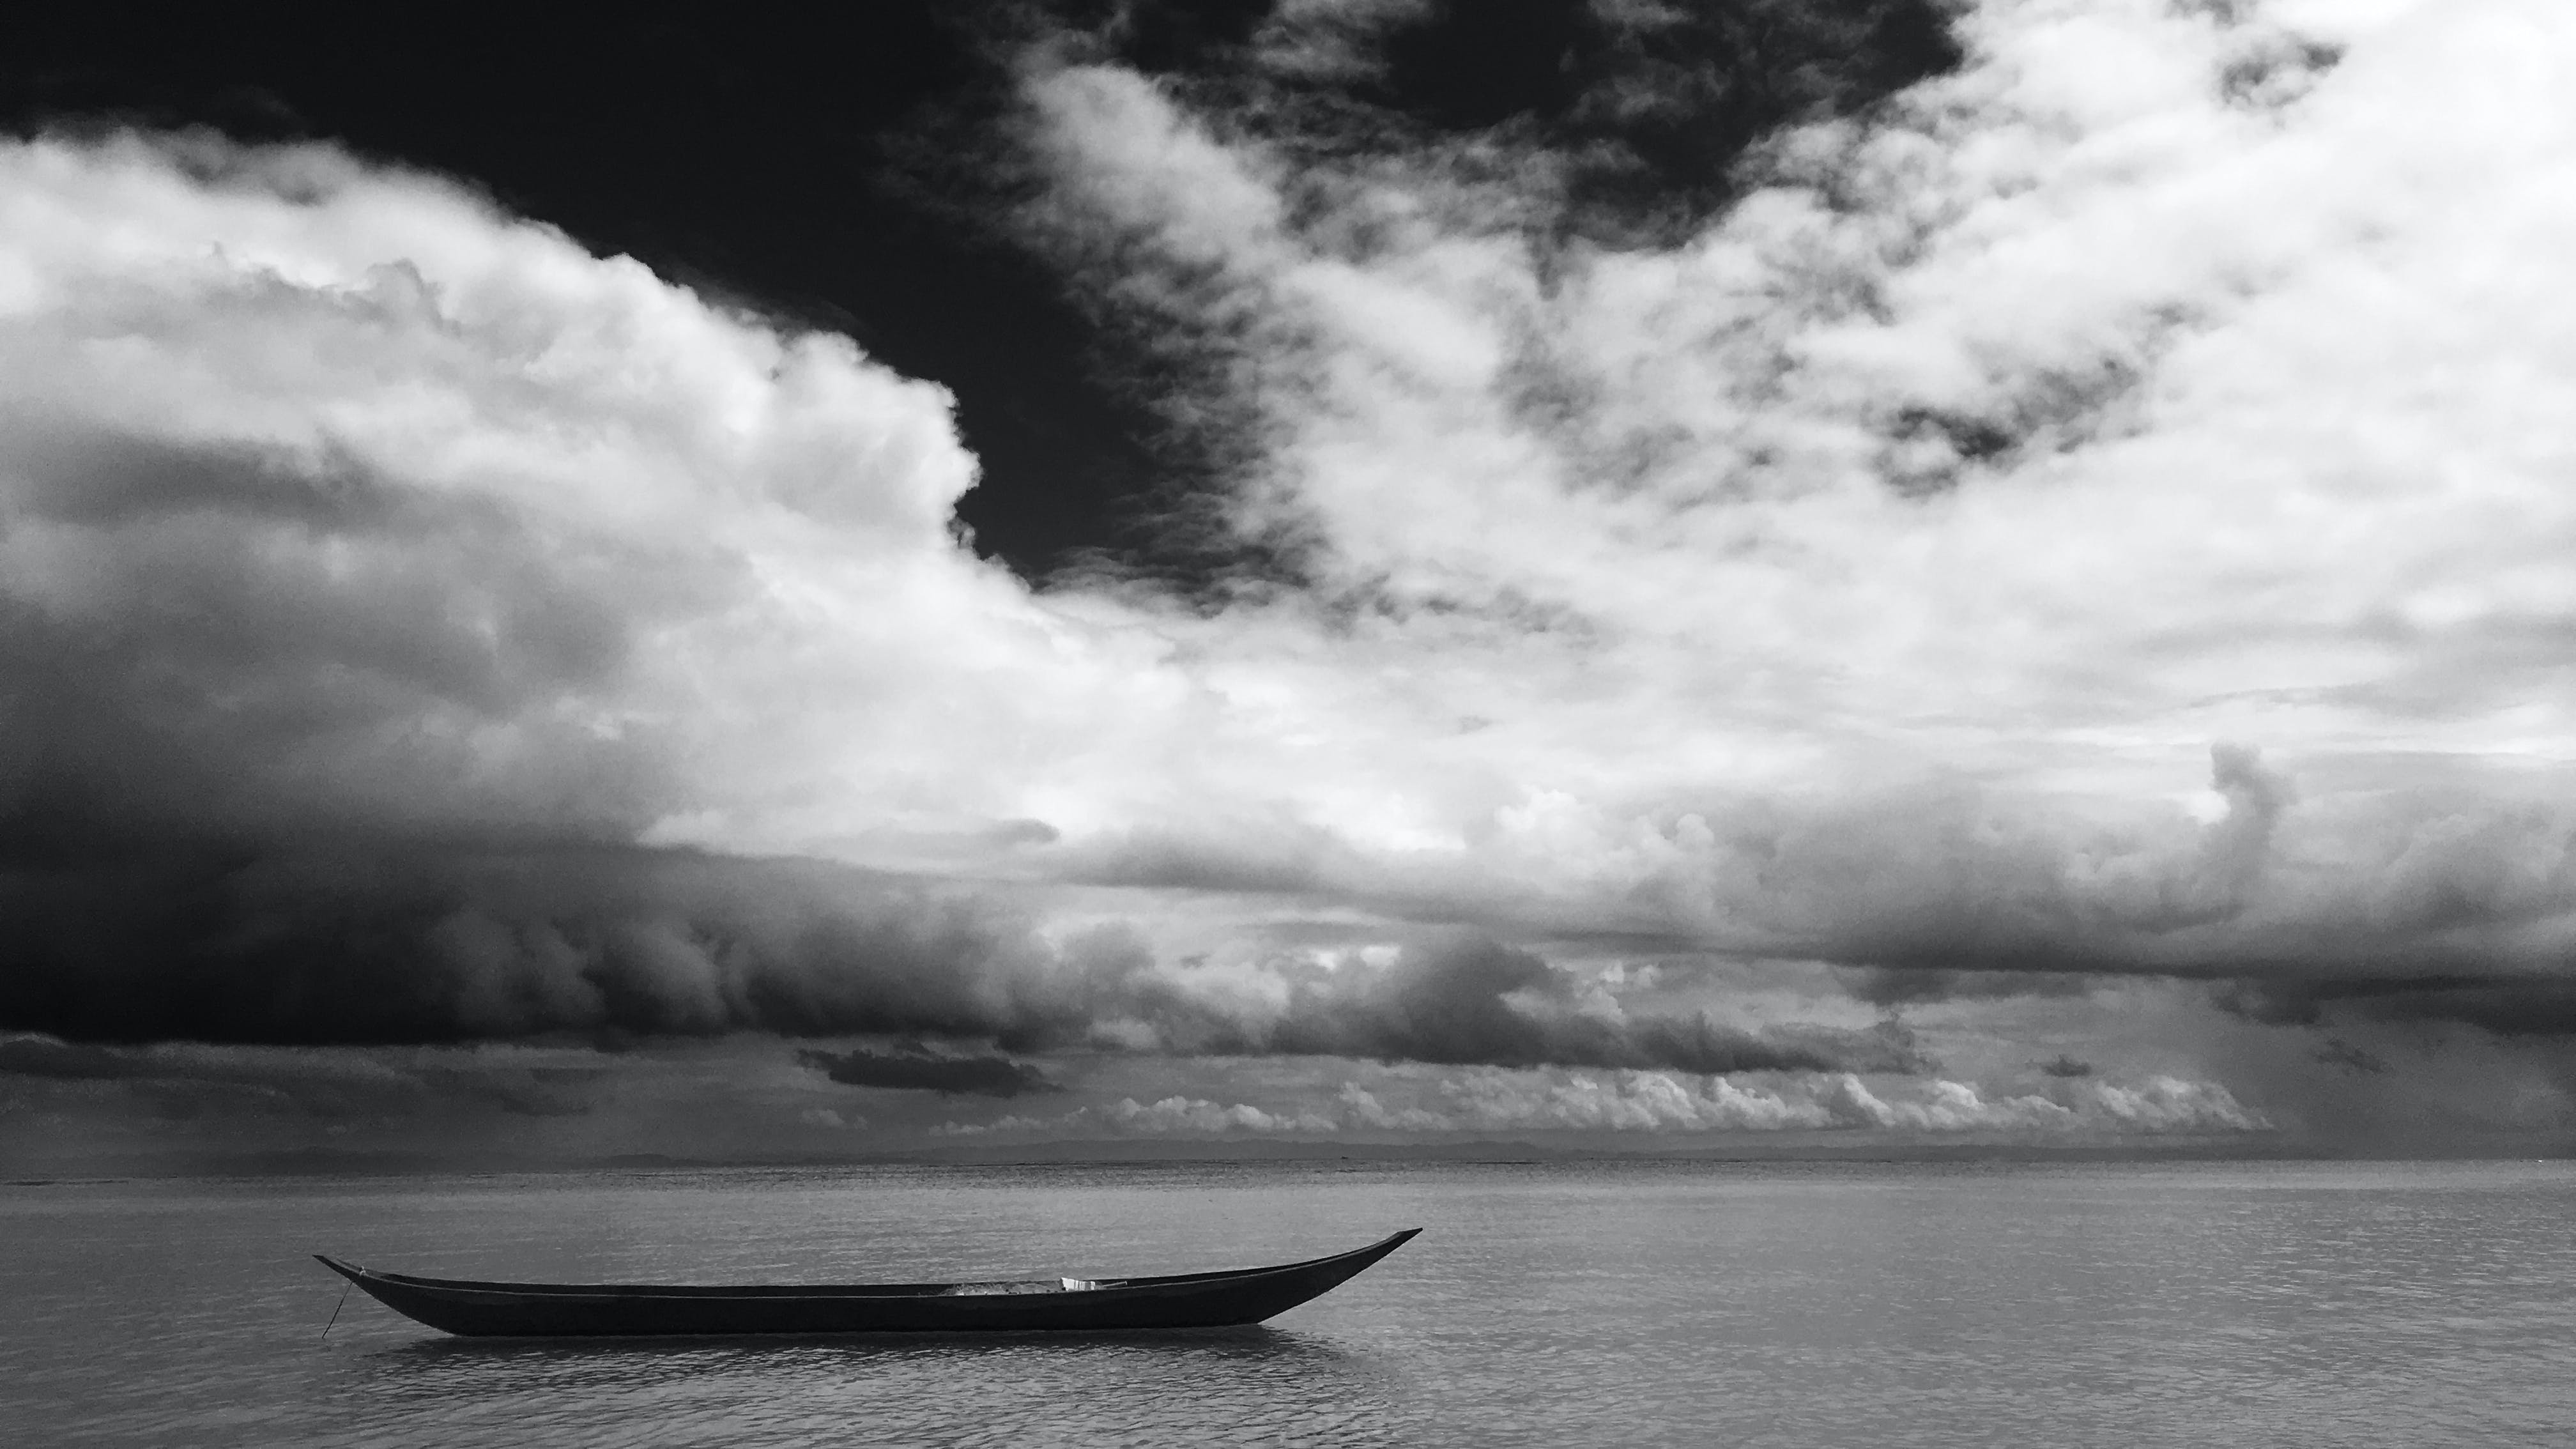 Grayscale Photo of Black Boat